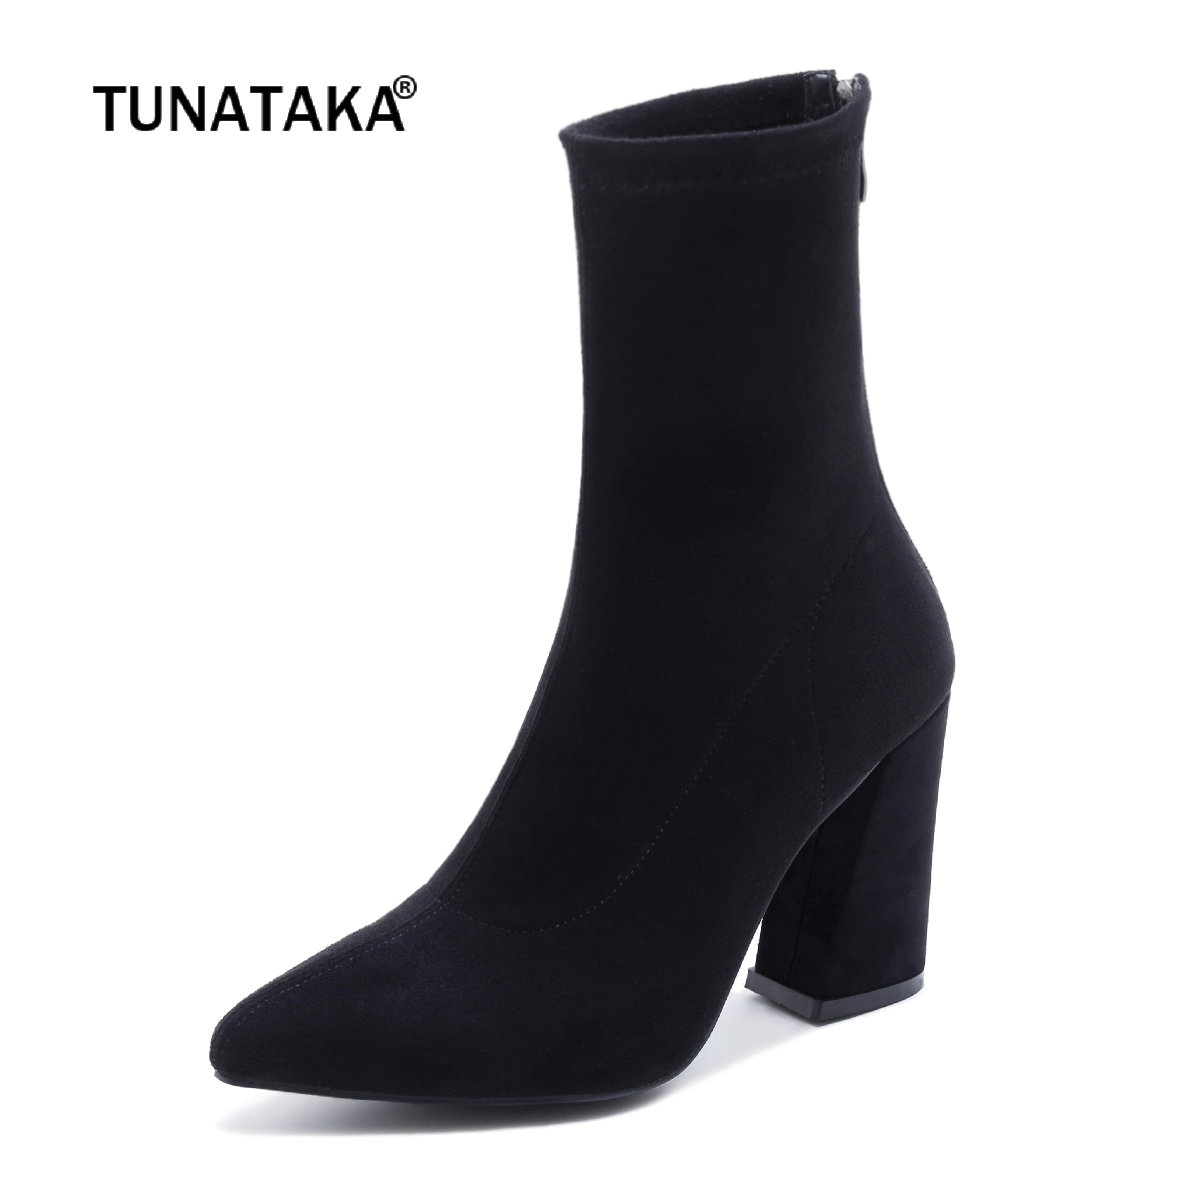 Women Suede Hoof Heels Fashion Zipper Ankle Boots Ladies Pointed Toe Spring Autumn Elastic Shoes Black enmayla fashion front zipper ankle boots women chucky heels square toe high heels shoes woman black yellow suede autumn boots